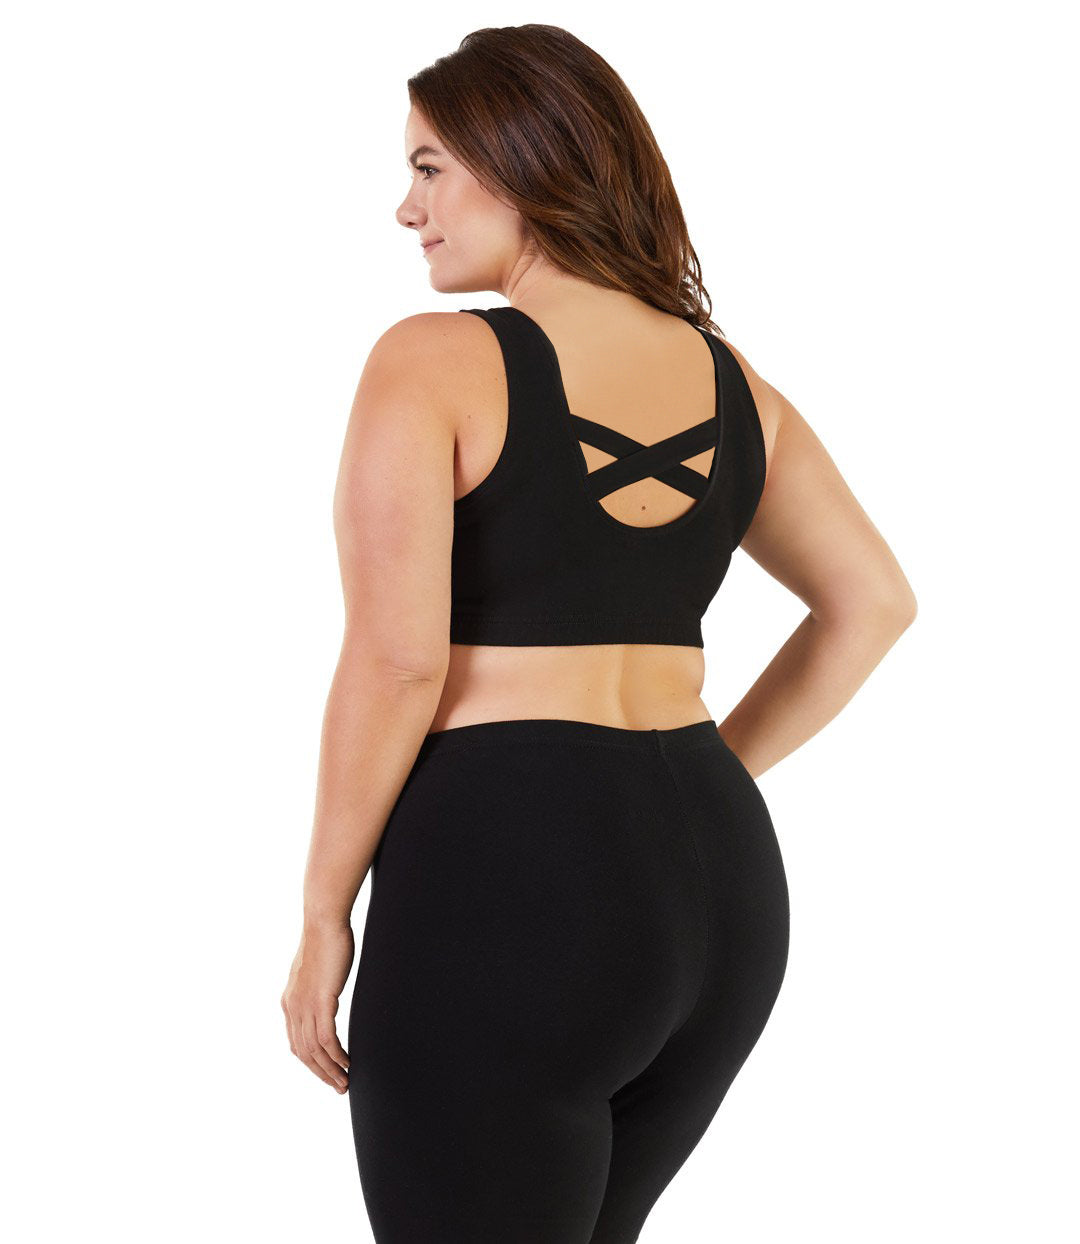 Stretch Naturals Crossback Bra Top Basic Colors-Intimates Bras-Hop Wo Trading Co Ltd-XL-Black-JunoActive